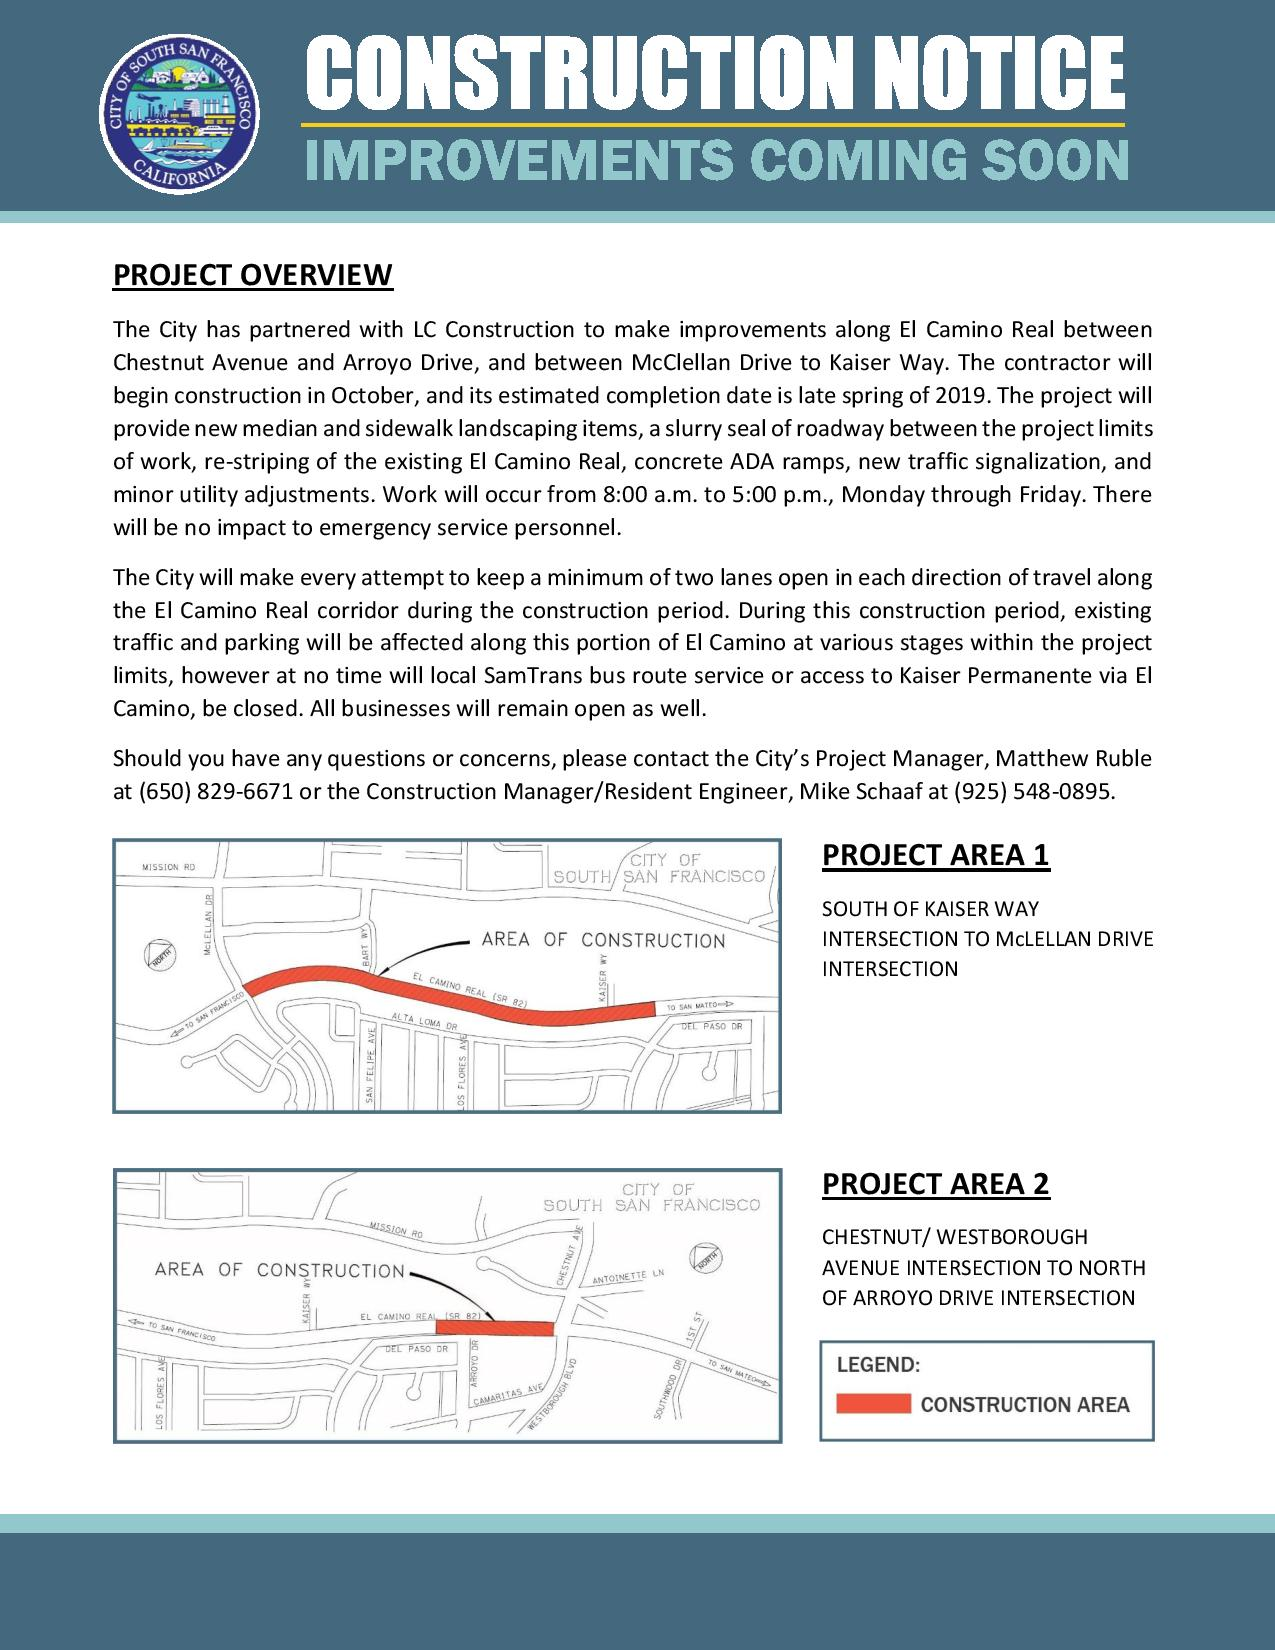 El Camino Real Construction Notice: TRAFFIC IMPACTS  Between Chestnut to Arroyo, McClellan to Kaiser